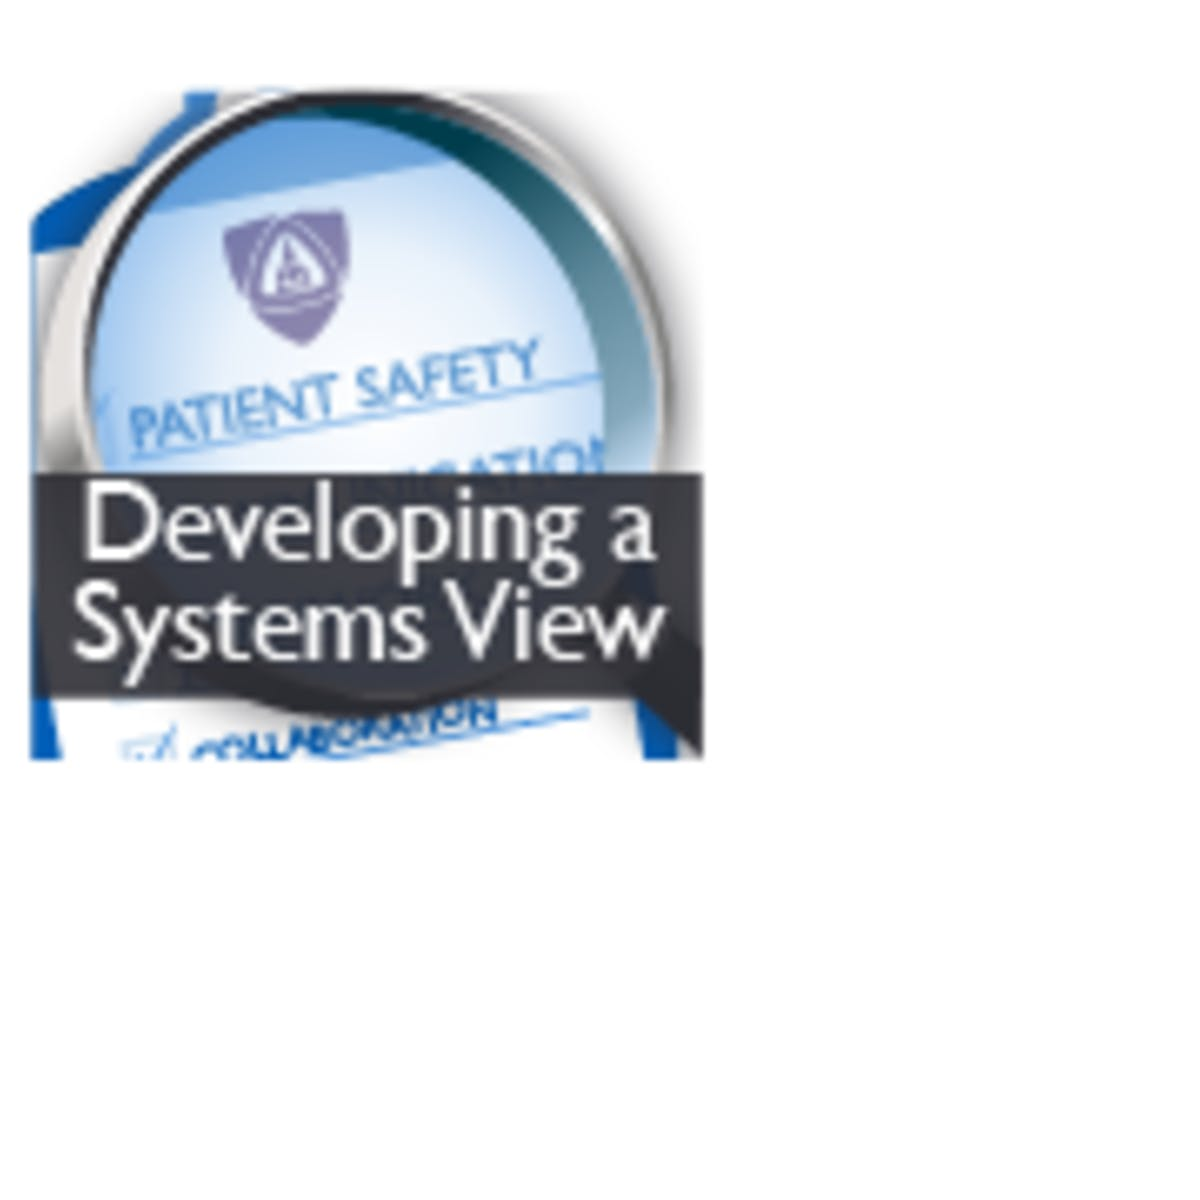 Patient Safety and Quality Improvement: Developing a Systems View (Patient Safety I)